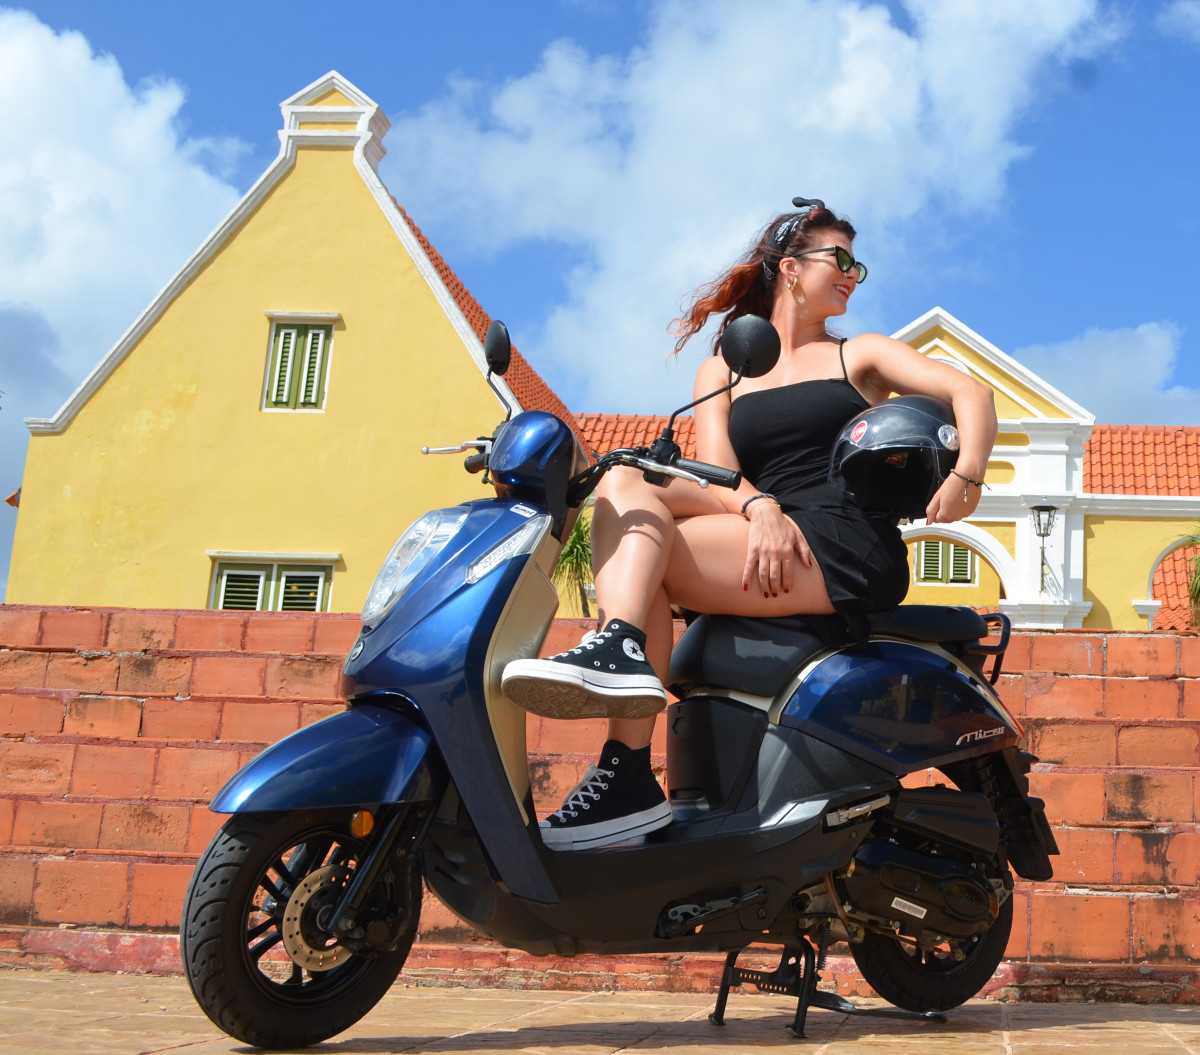 scooter-curacao-sym-girl